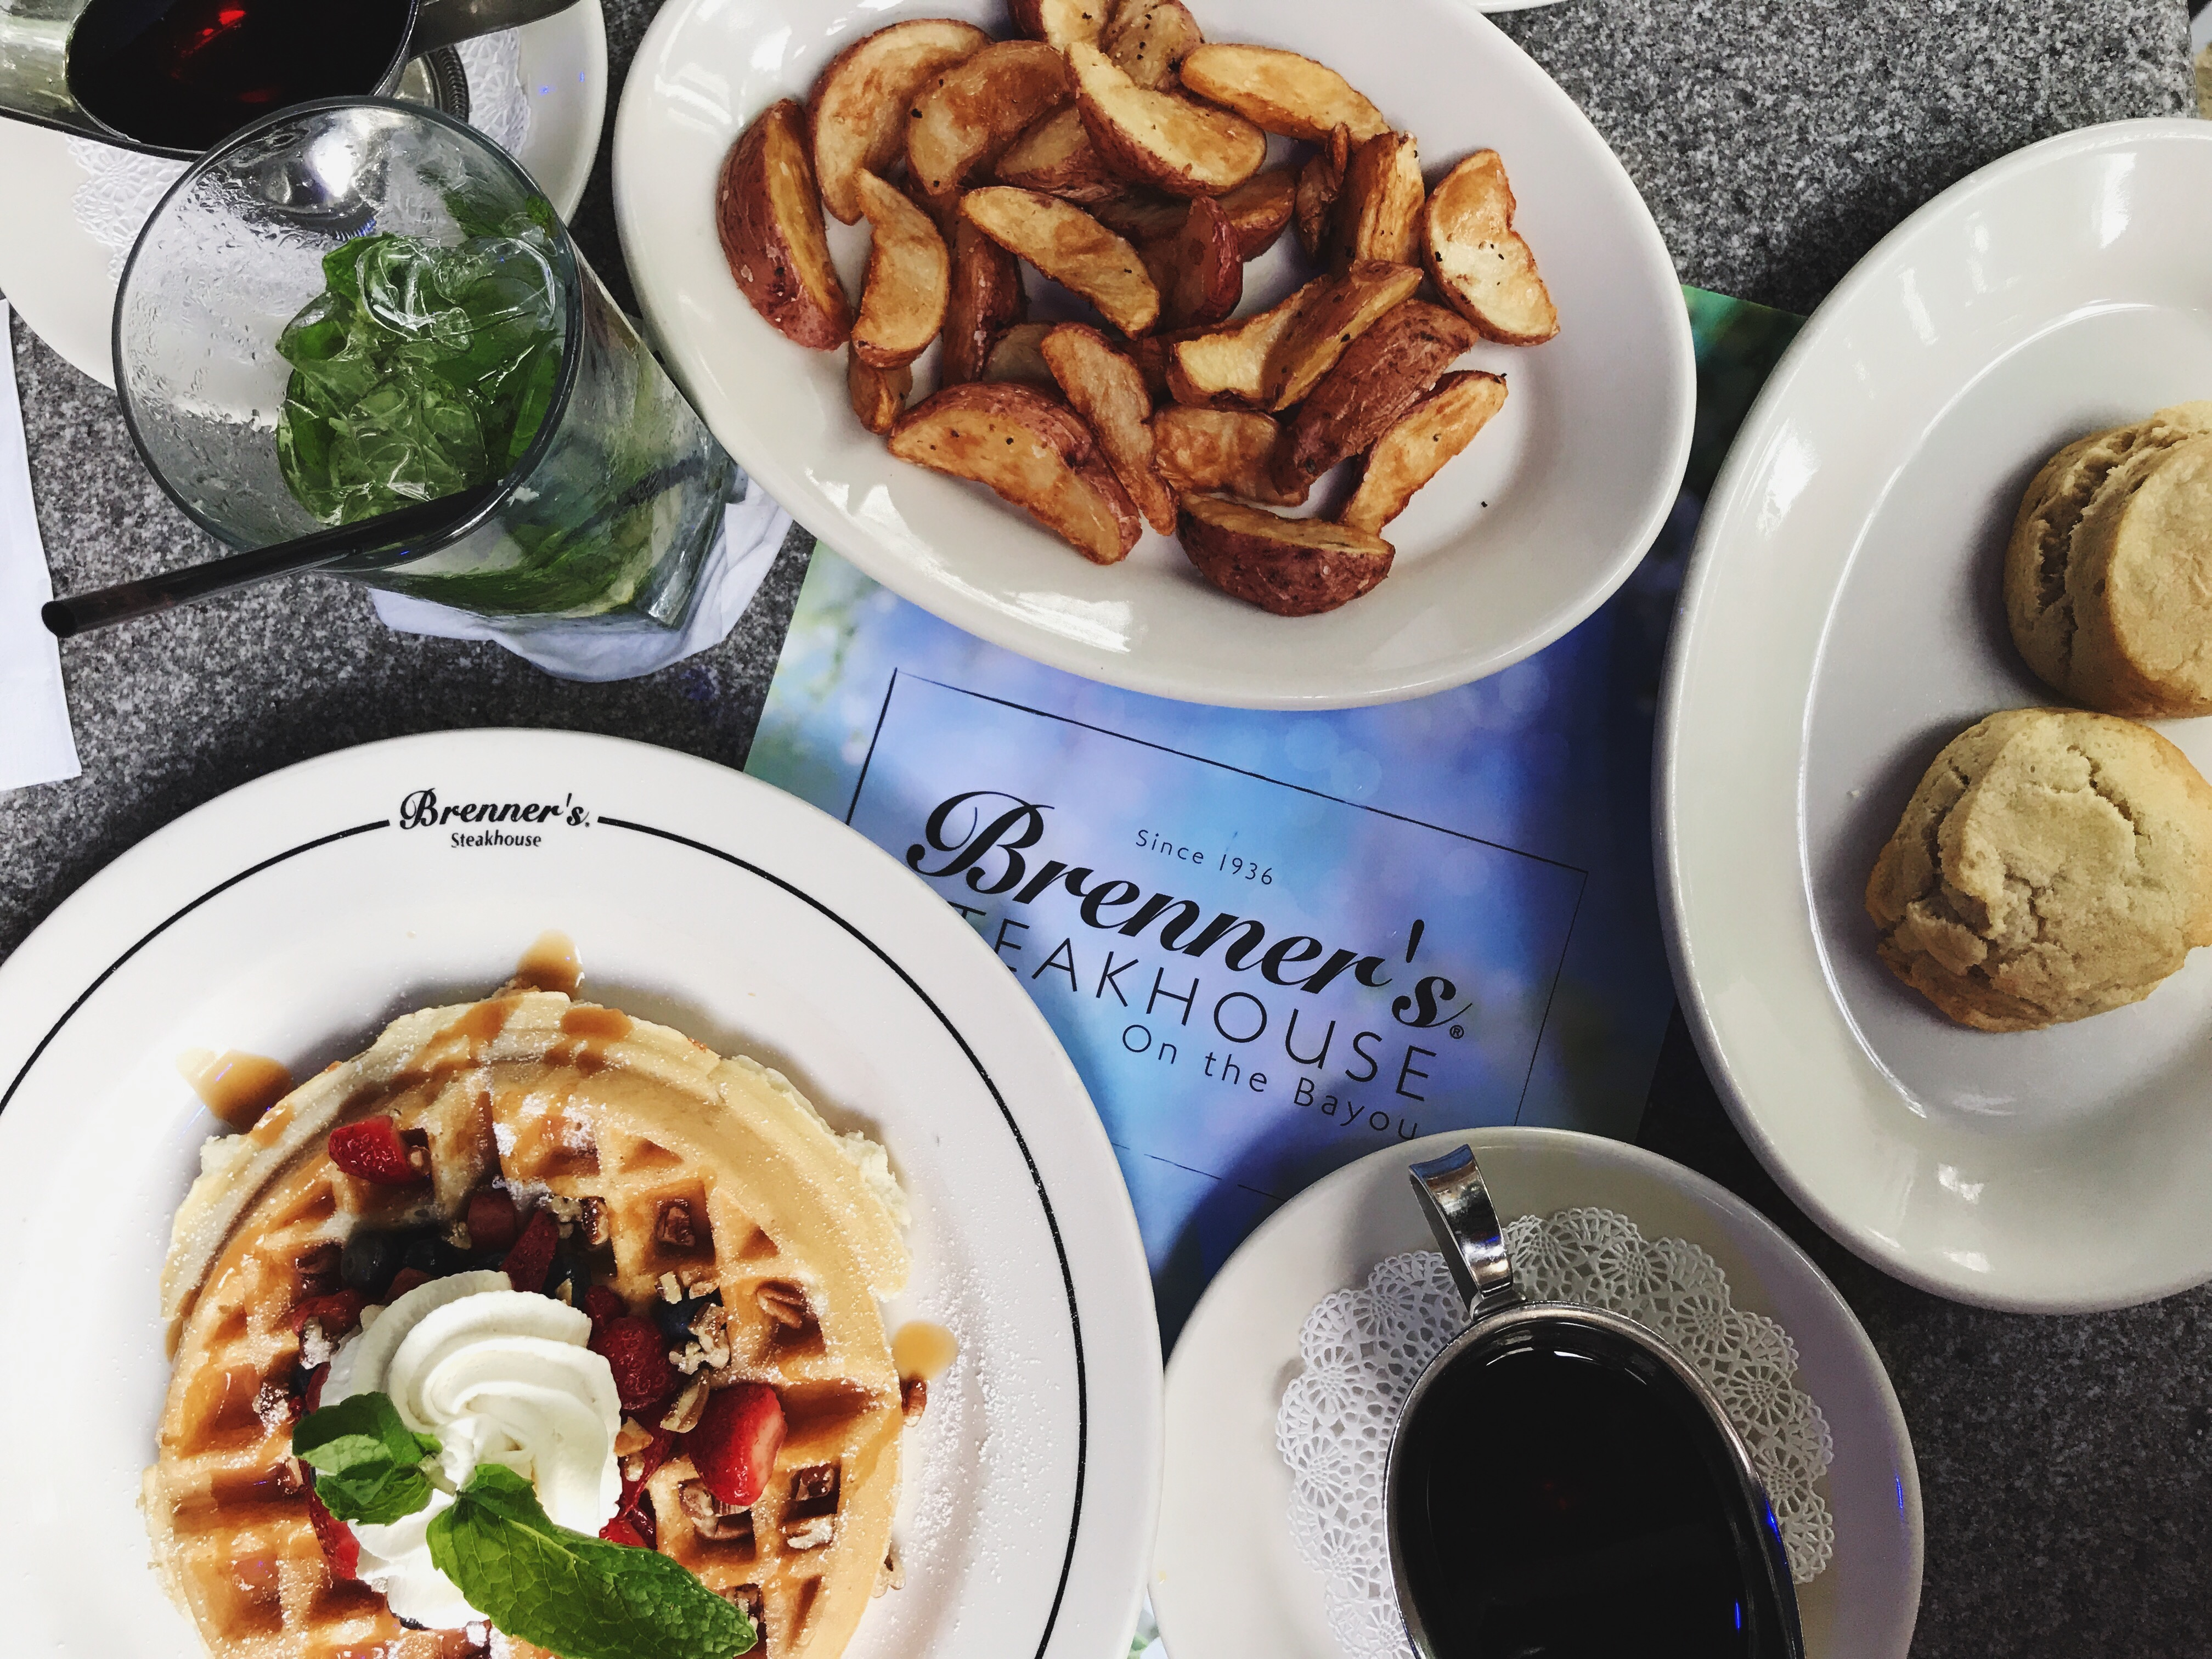 brenner's on the bayou, houston city guide, restaurants in houston where to eat, best blogger restaurants in houston, best brunch in houston, best biscuits in houston, most beautiful patio restaurants in houston, restaurants with a patio for happy hour